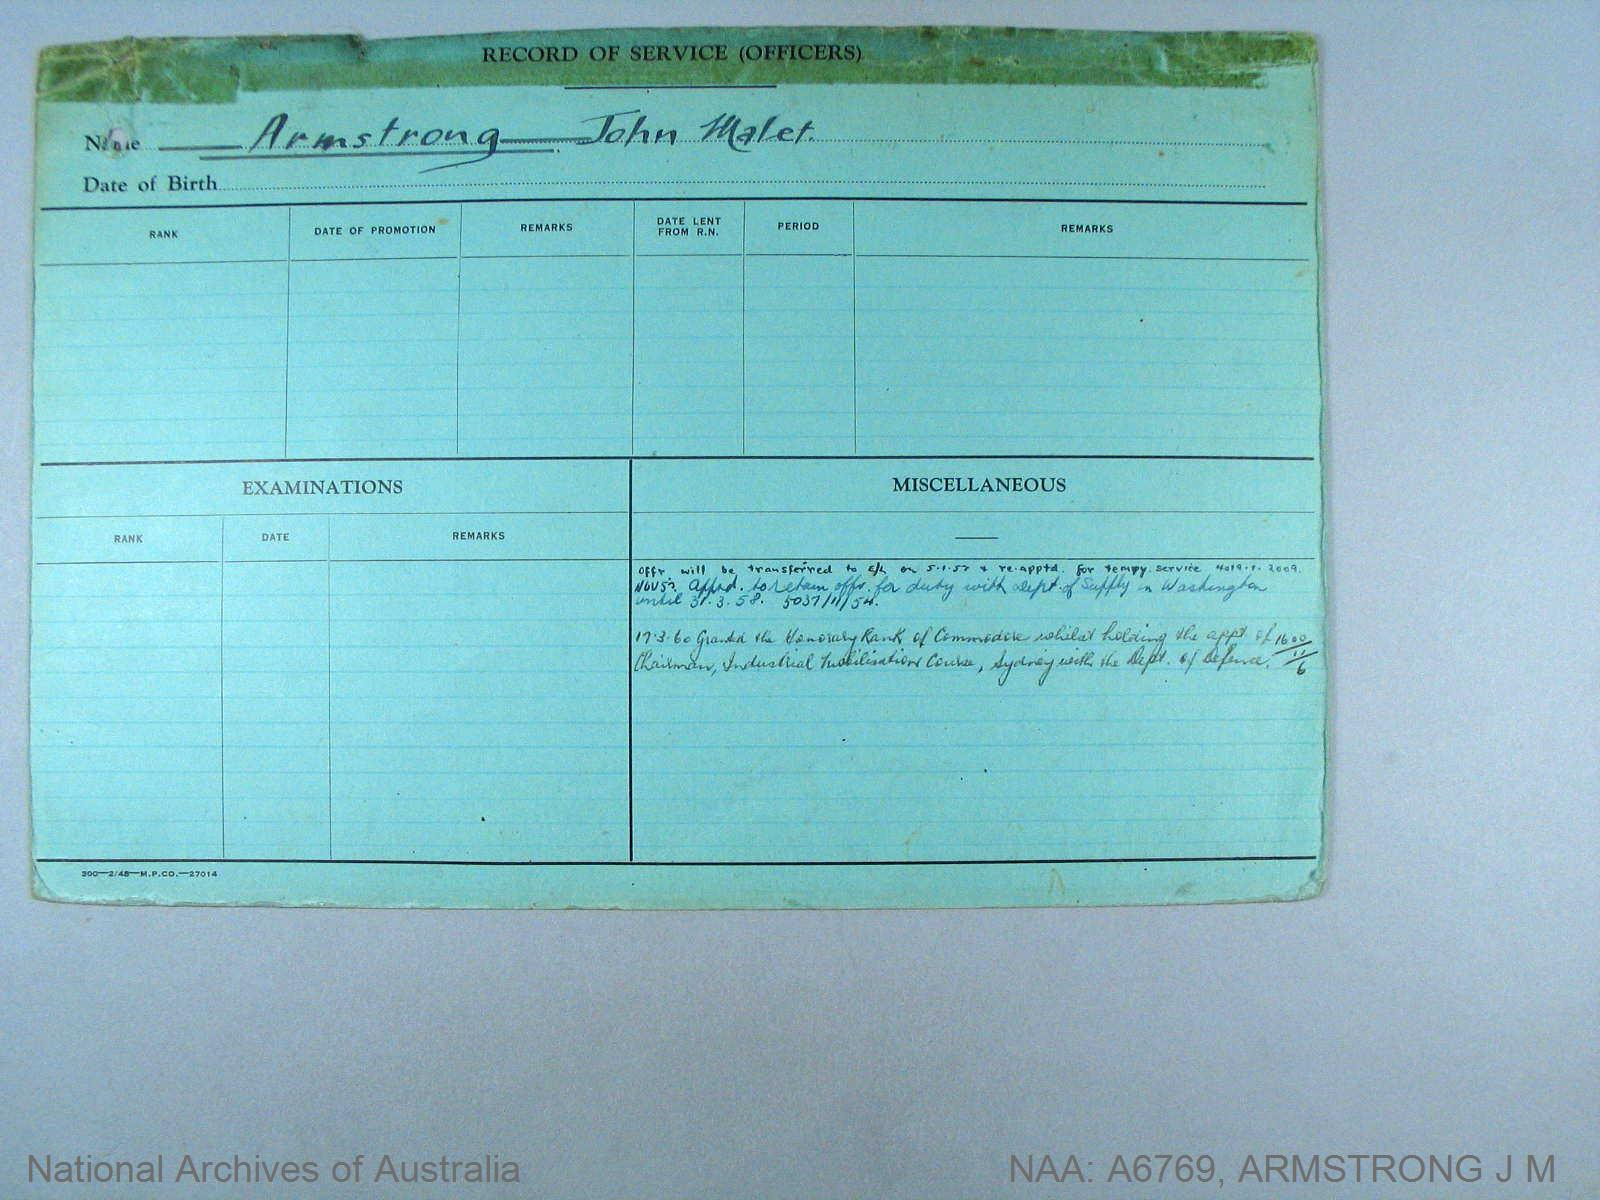 ARMSTRONG JOHN MALET : Date of birth - 05 Jan 1900 : Place of birth - SYDNEY NSW : Place of enlistment - SYDNEY : Next of Kin - PHILLIPA